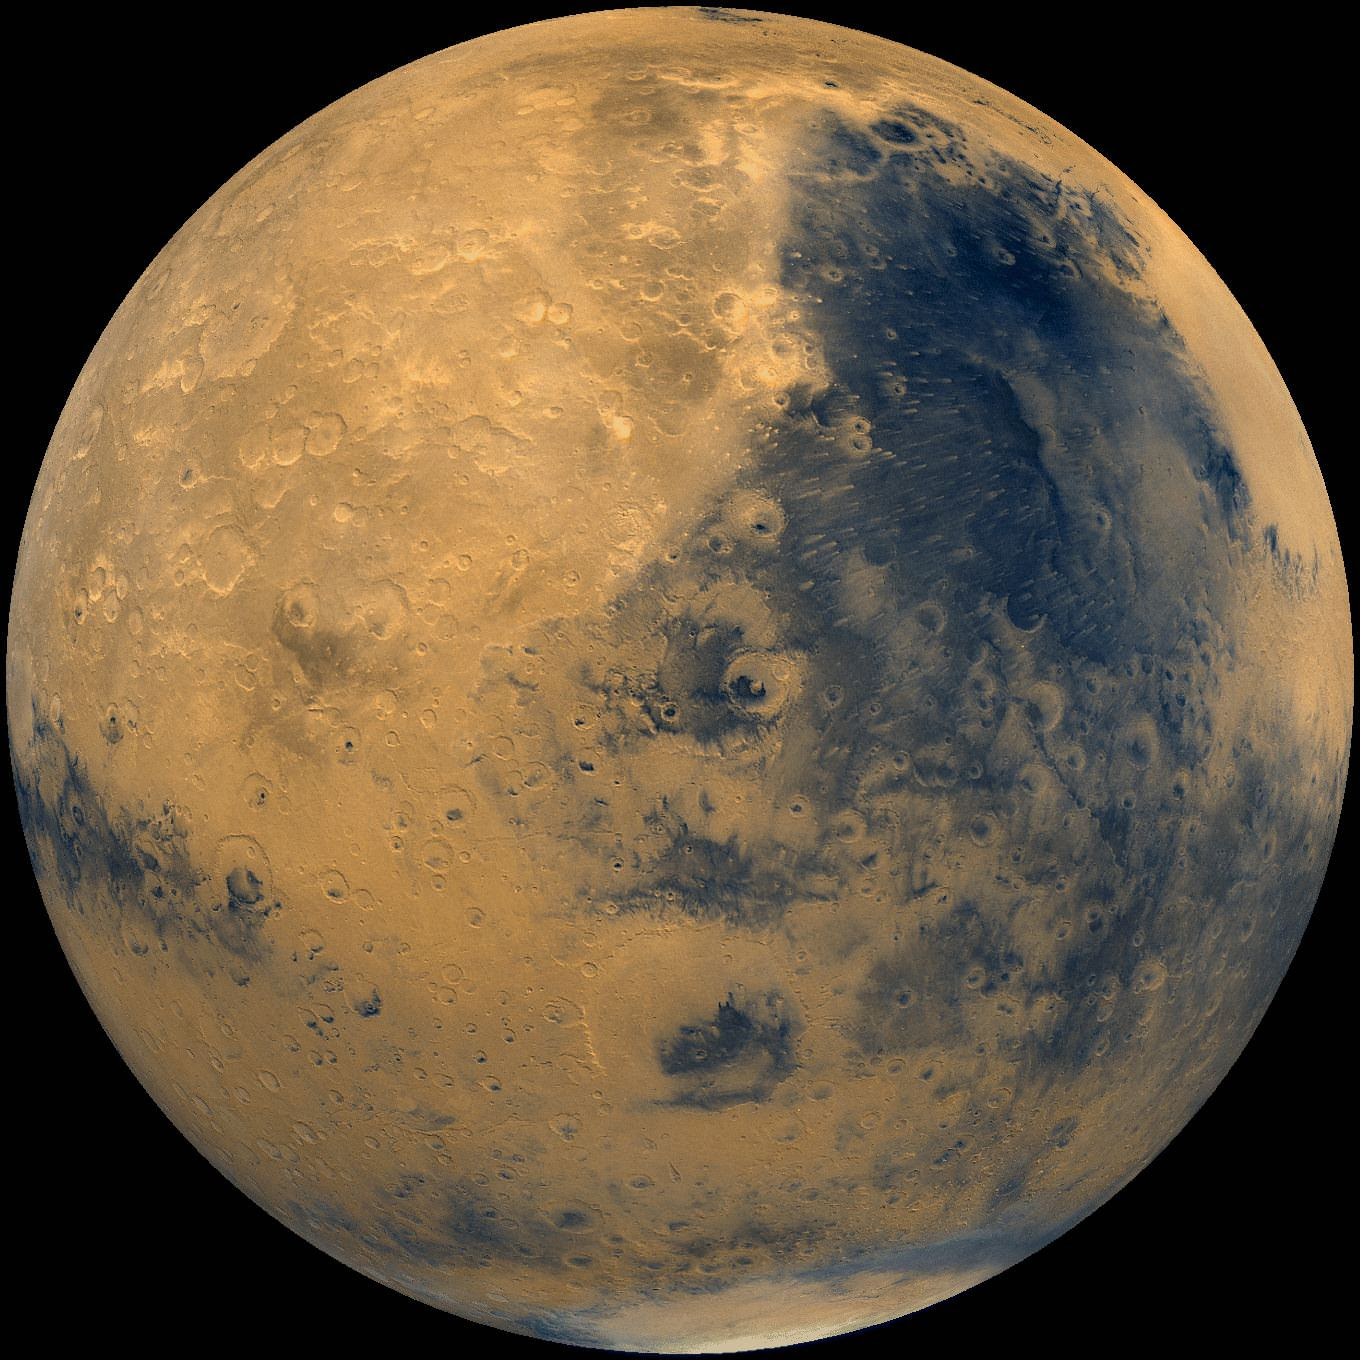 Mars! Martian meteorites make their way to Earth after being ejected from Mars by a meteor impact on the Red Planet. Image: NASA/National Space Science Data Center.